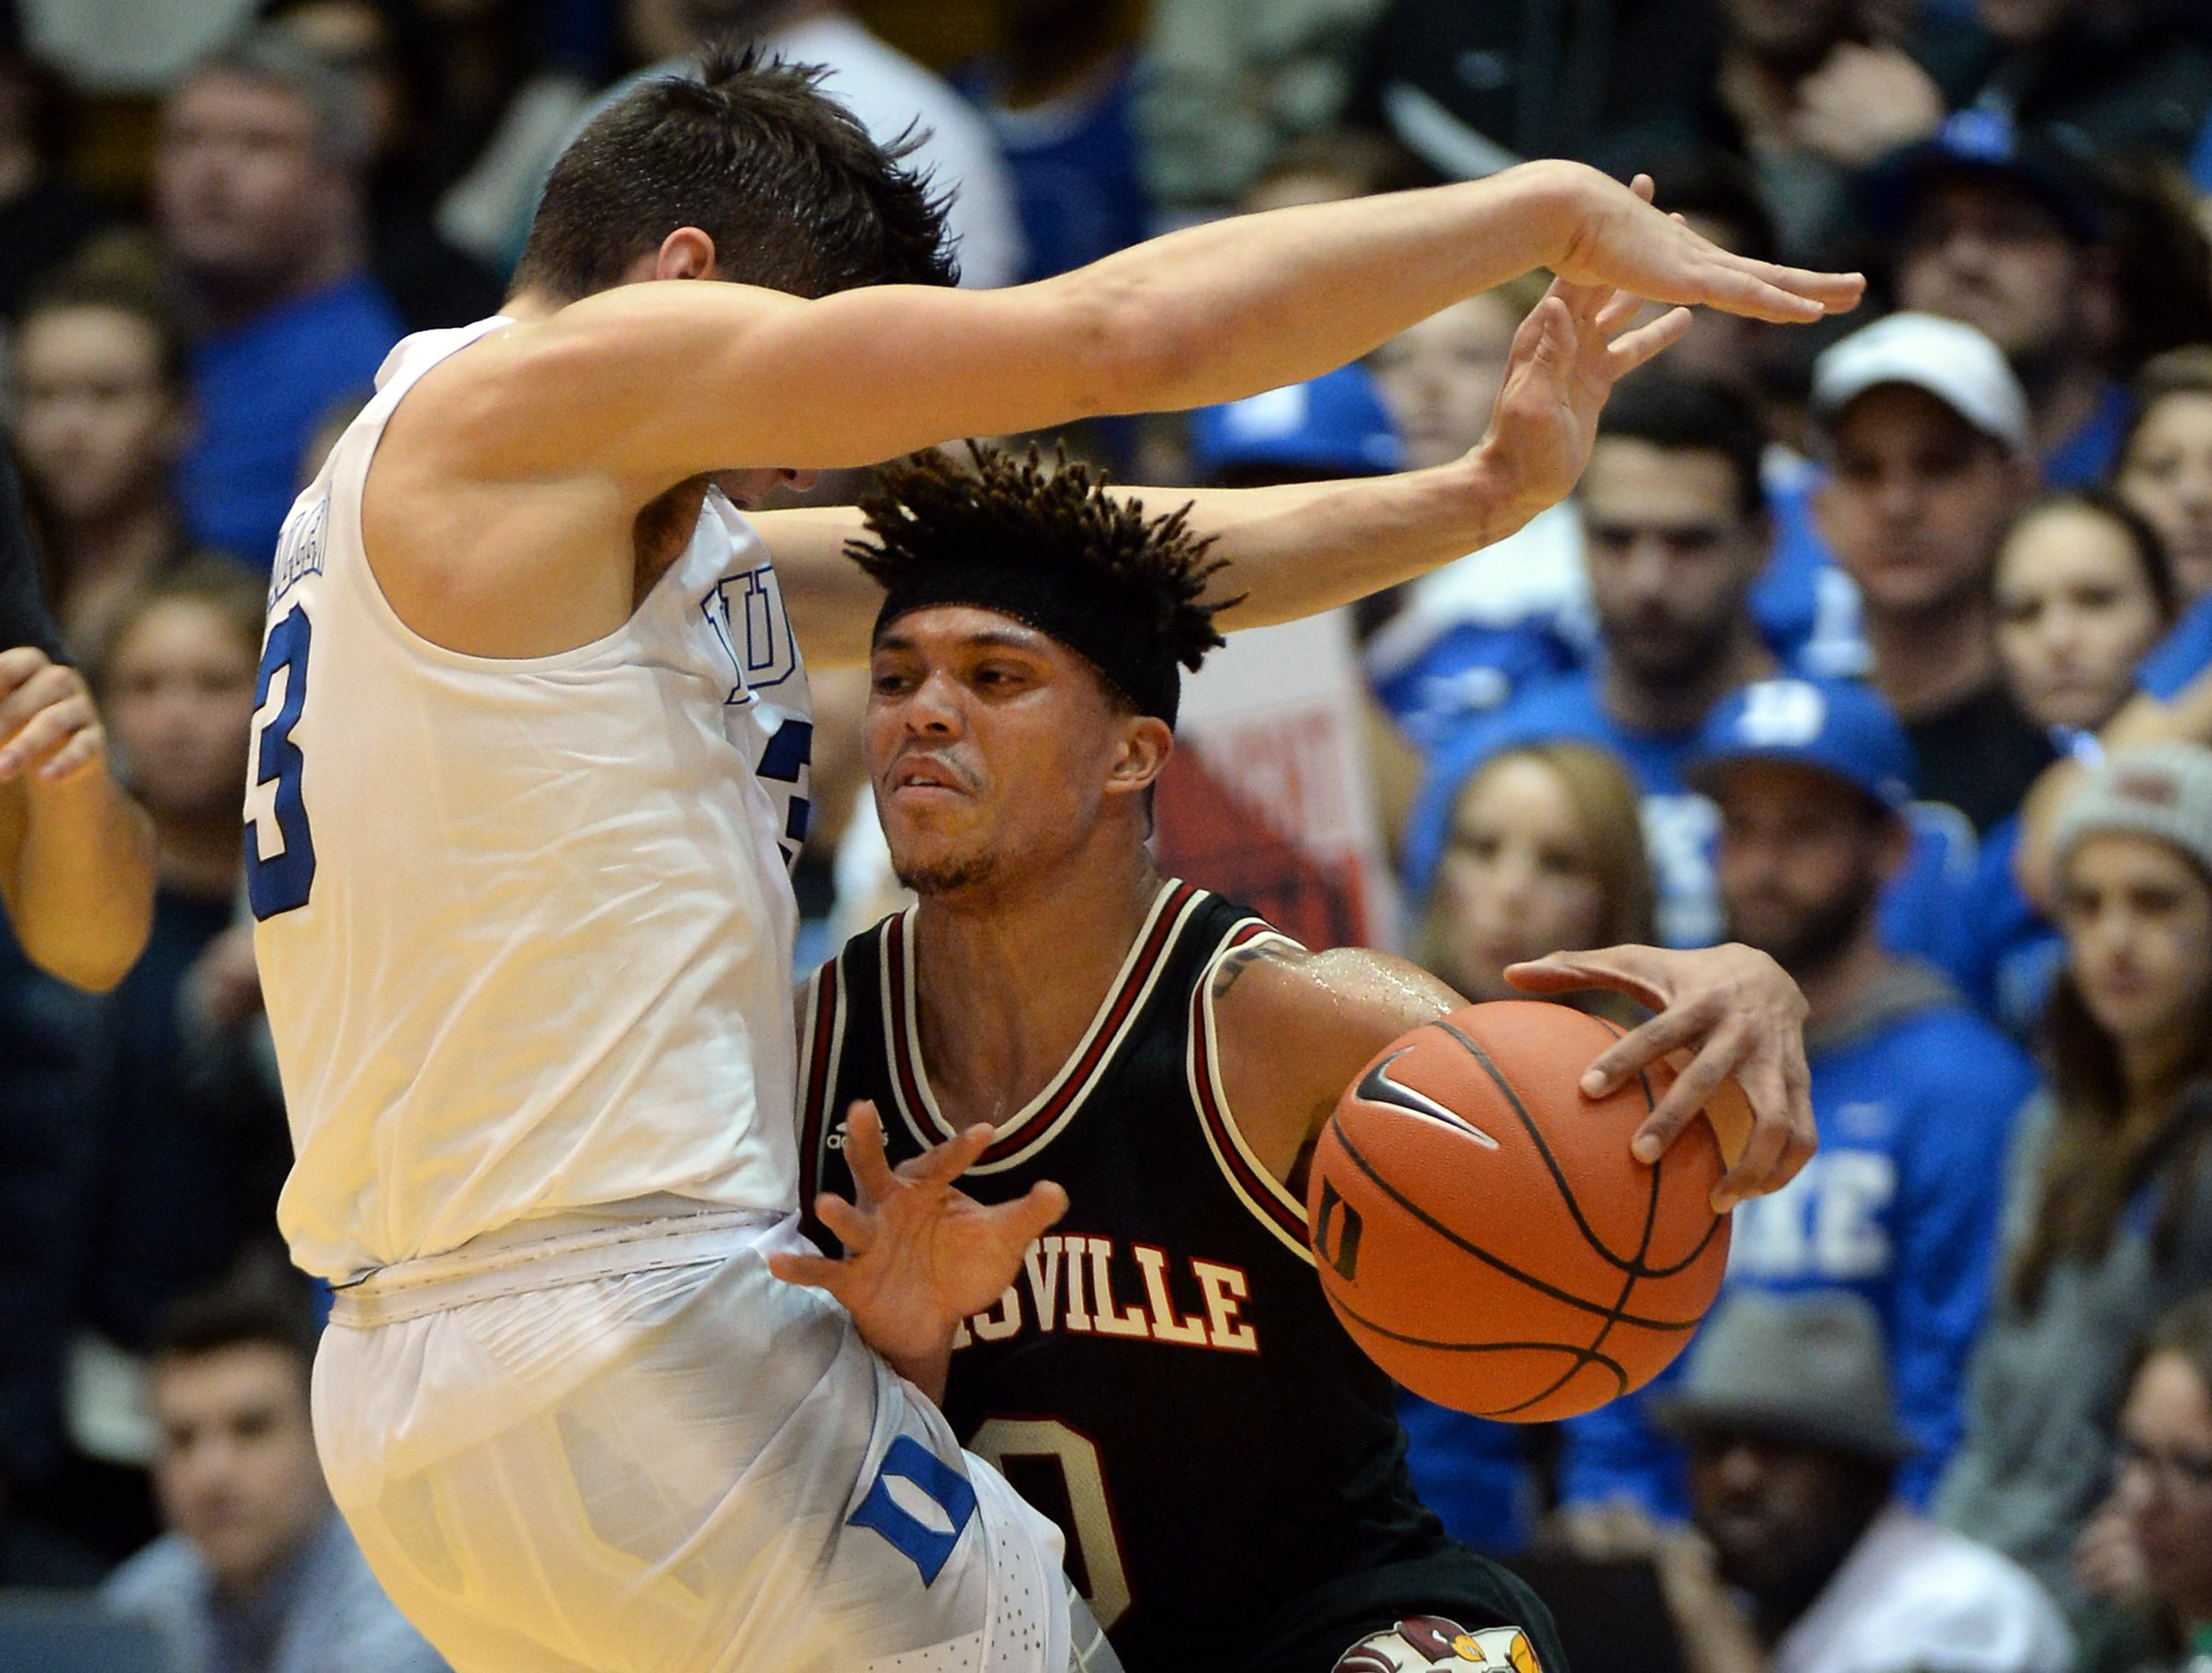 Louisville guard Damion Lee transferred to the school to play in the NCAA Tournament, and now he won't be able to.